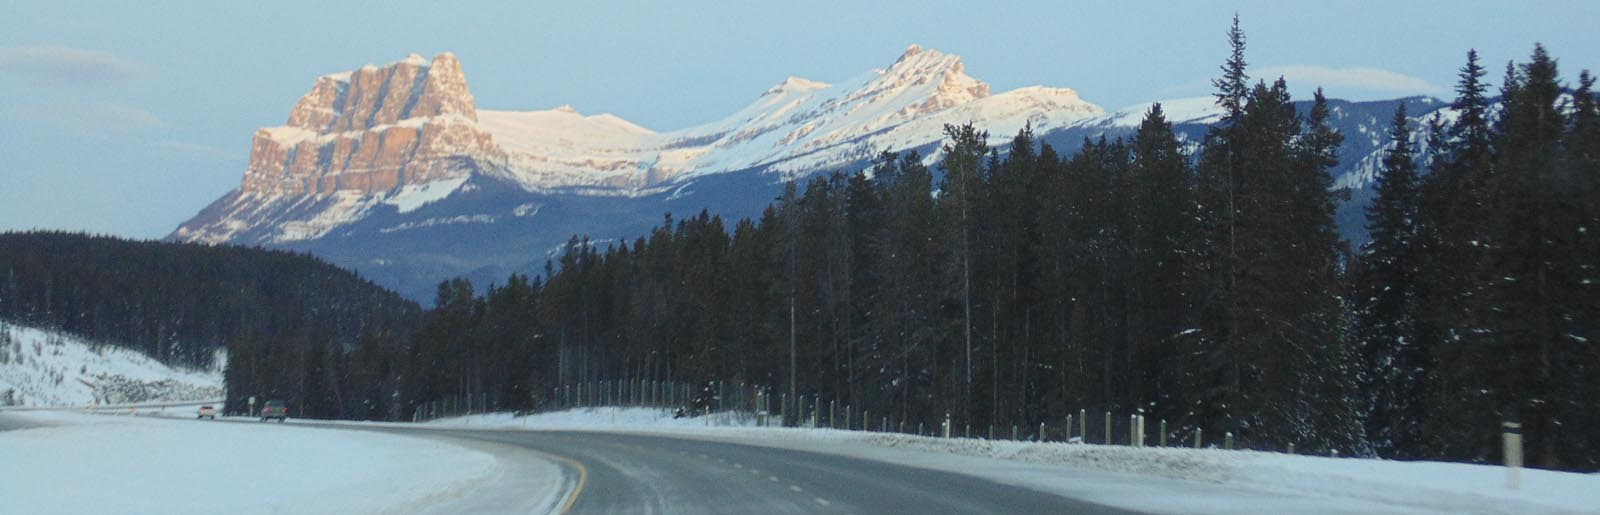 Lake Louise -Castle Mountain in wintertime -sliver